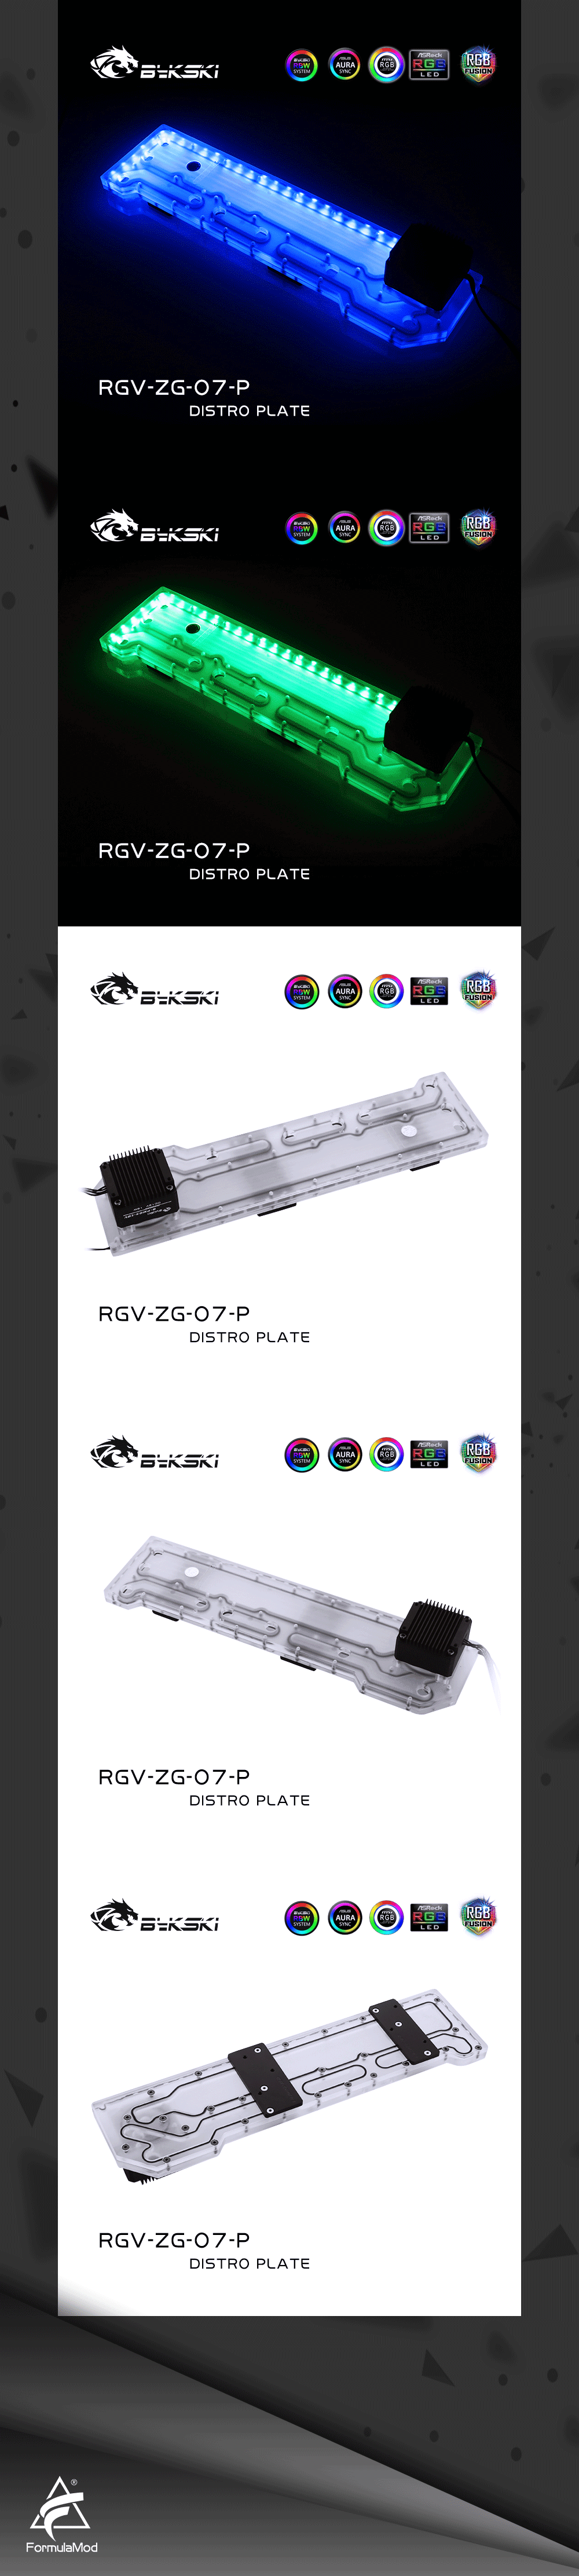 Bykski RGV-ZG-07, Waterway Boards Kit For Zeaginal-07 Case, RBW Waterway Board CPU/GPU Water Block Program Kit Bykski RGV-ZG-07, Waterway Boards Kit For Zeaginal-07 Case, RBW Waterway Board CPU/GPU Water Block Program Kit Bykski GPU Water Block,RBW Waterway Board GPU Water Block,CPU/GPU Water Block